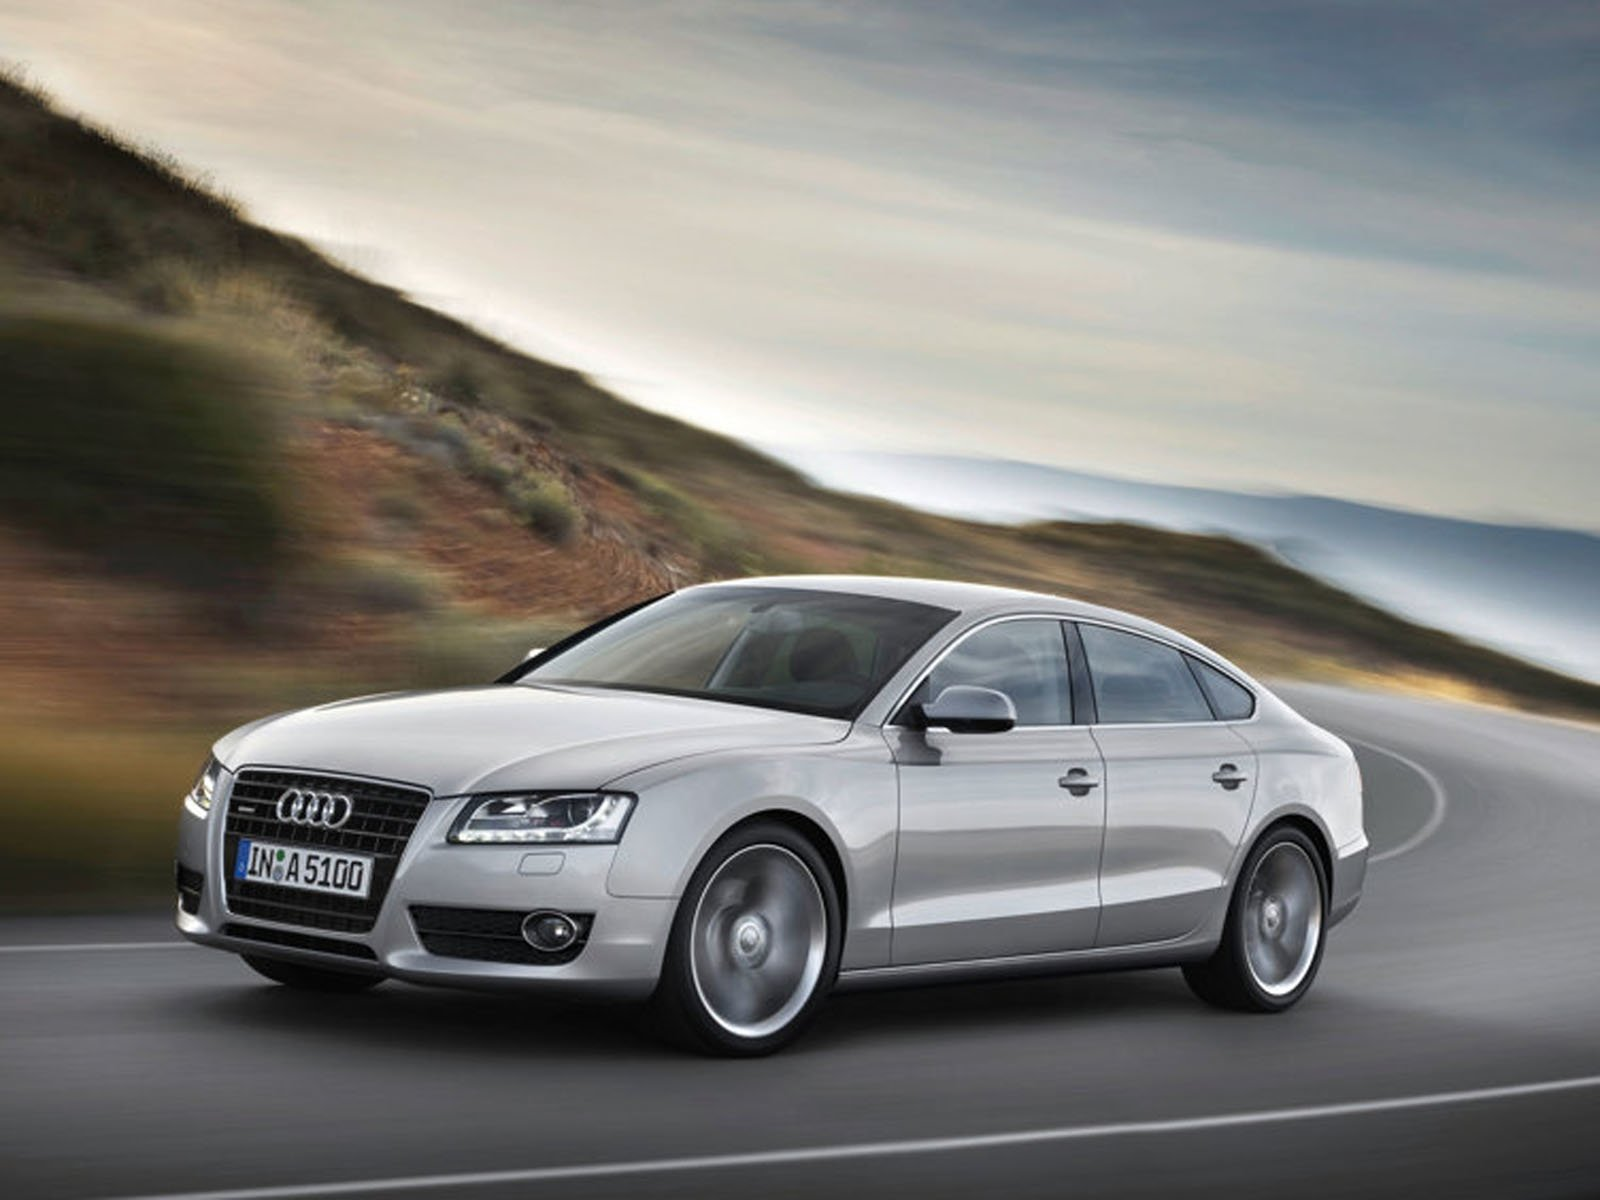 Latest Wallpapers Audi A5 Sportback Car Wallpapers Free Download